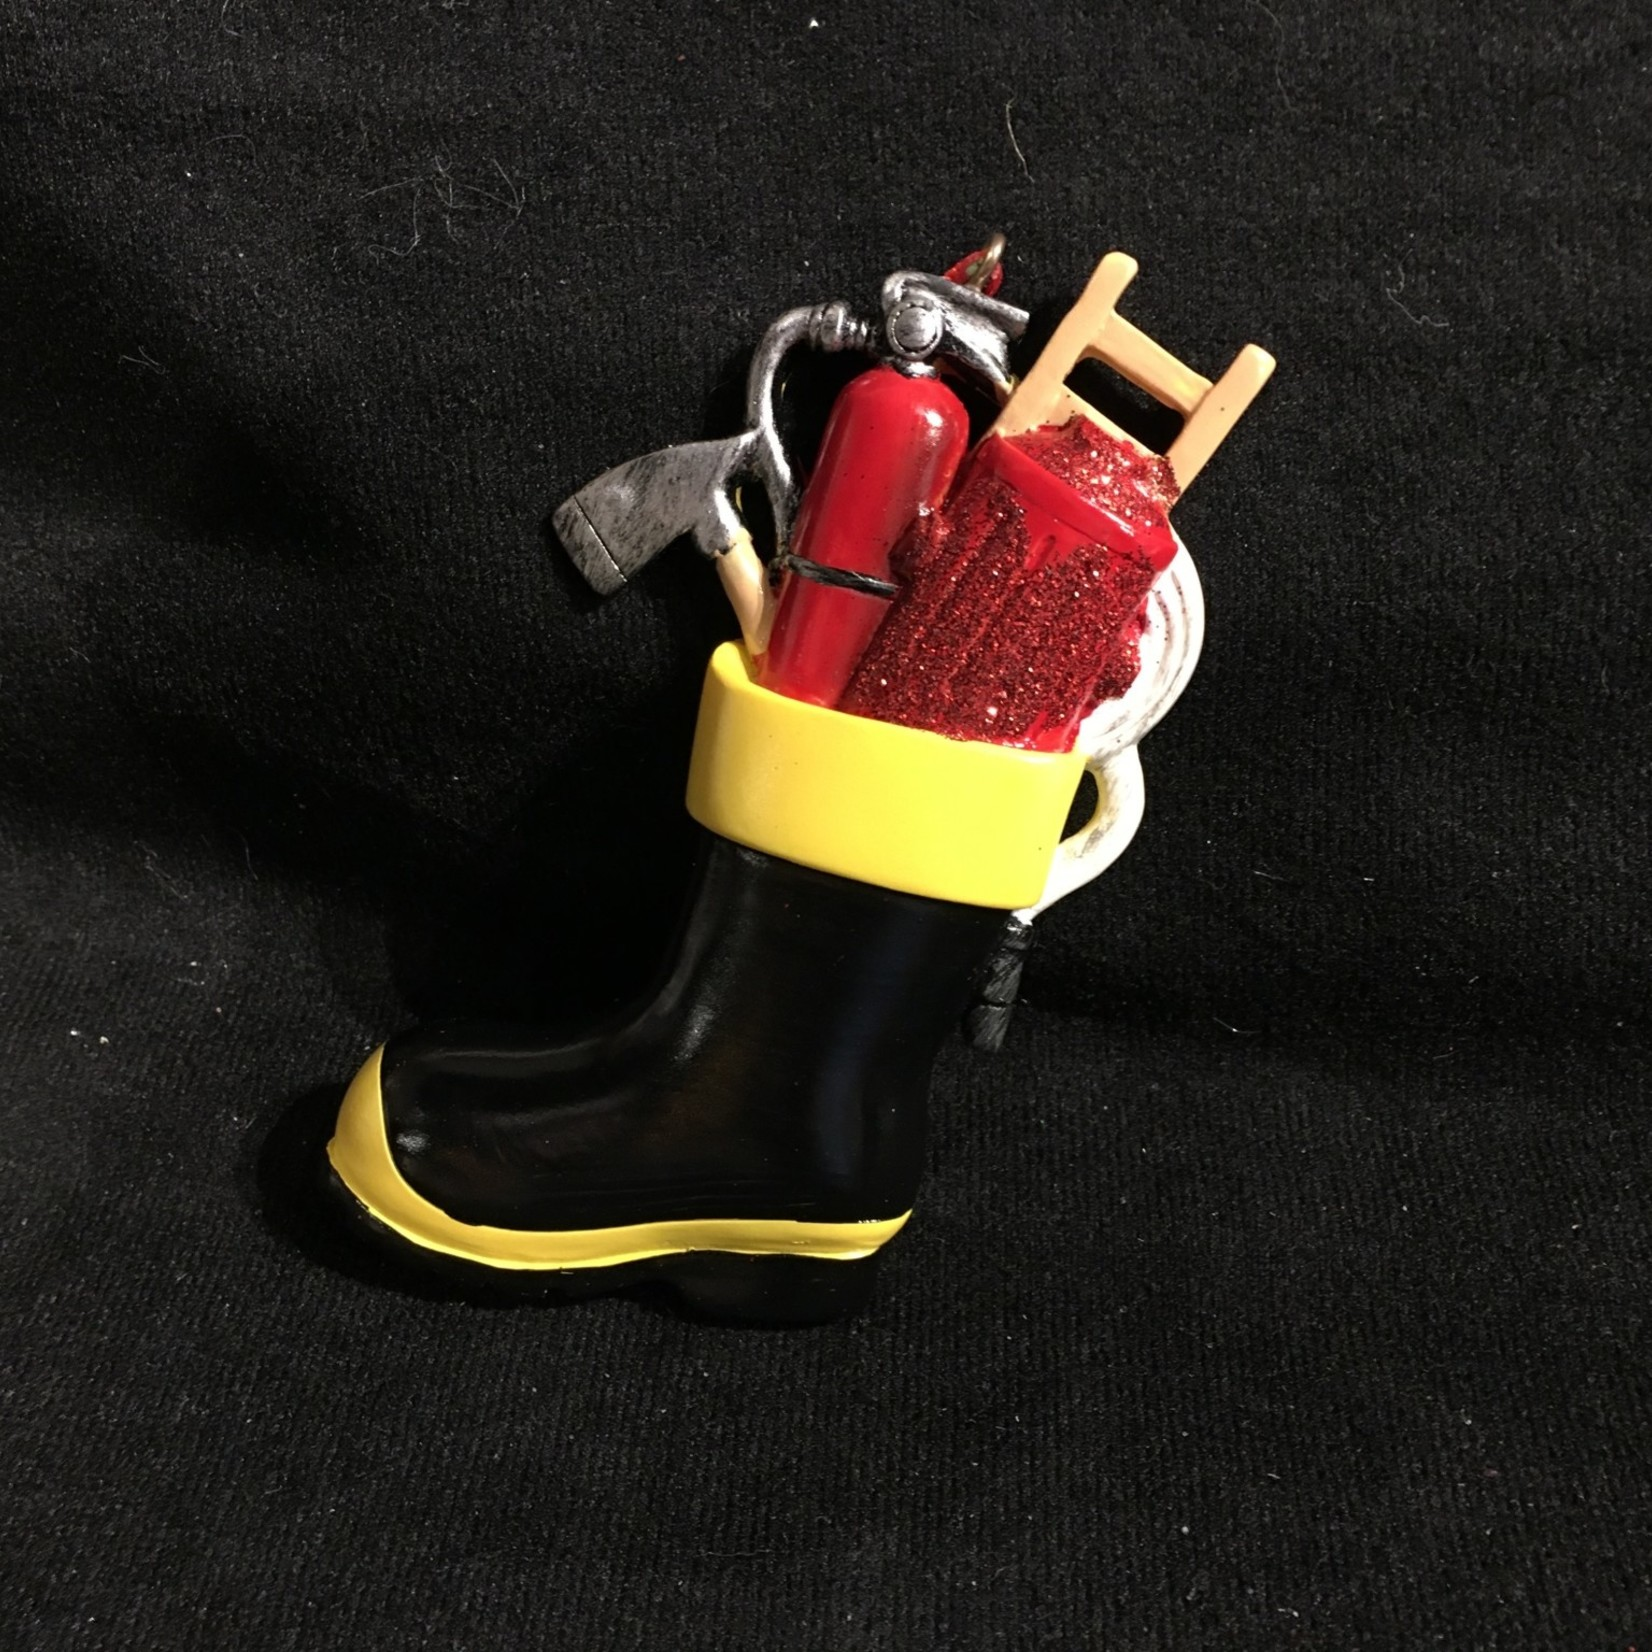 Fire Fighter Tools Orn